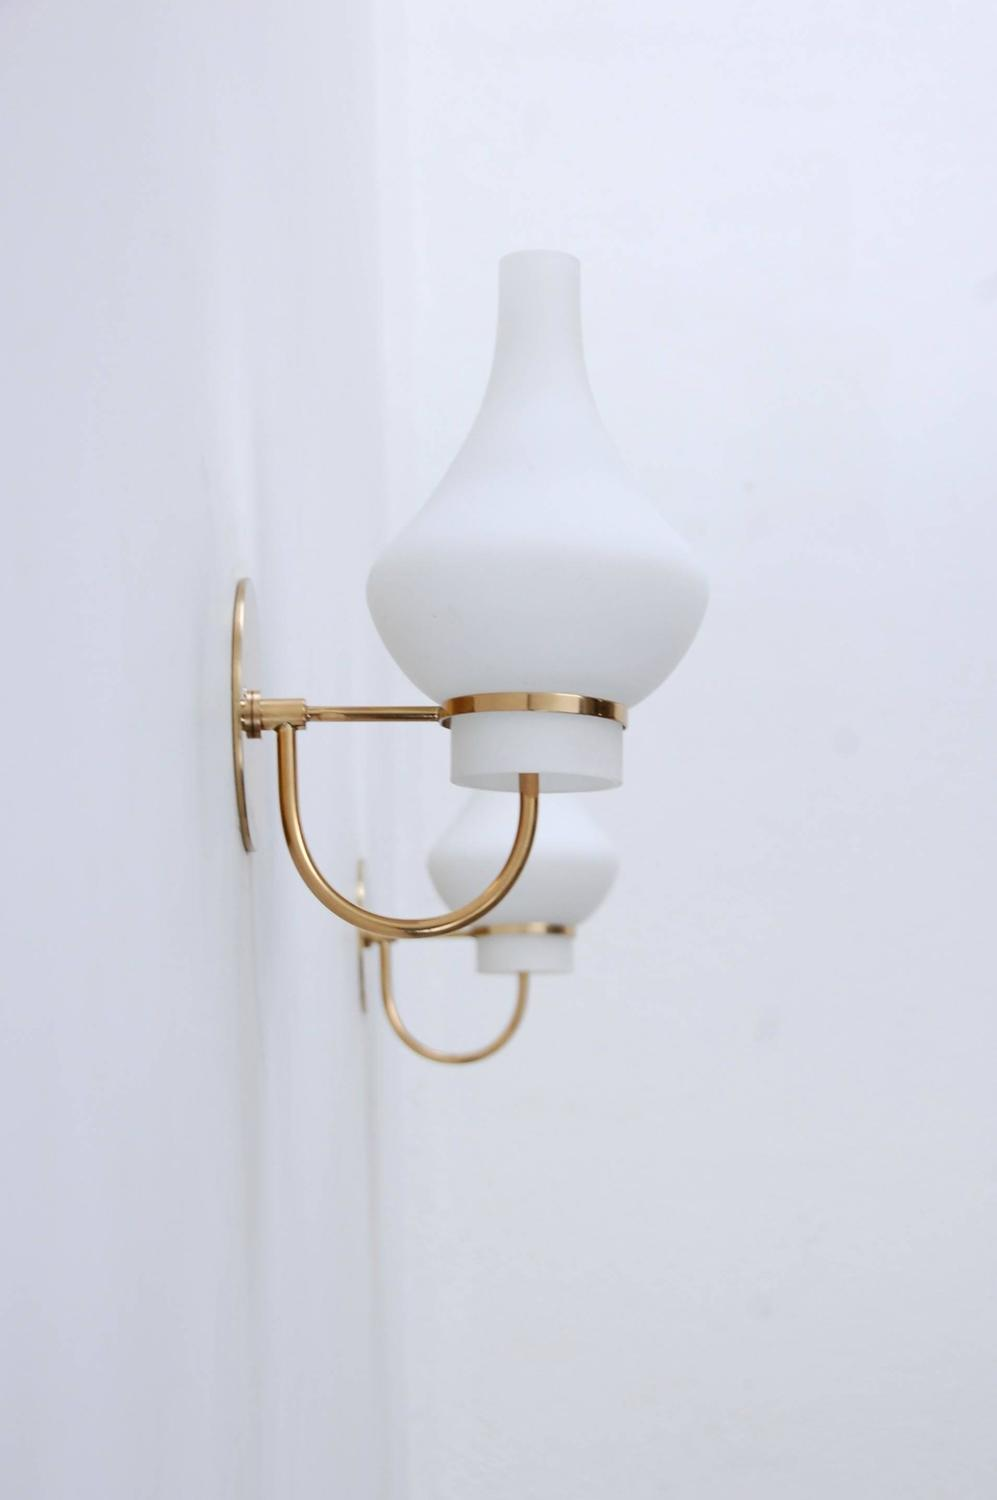 Contemporary Italian Wall Sconces : Modern Italian 1950s Sconces For Sale at 1stdibs